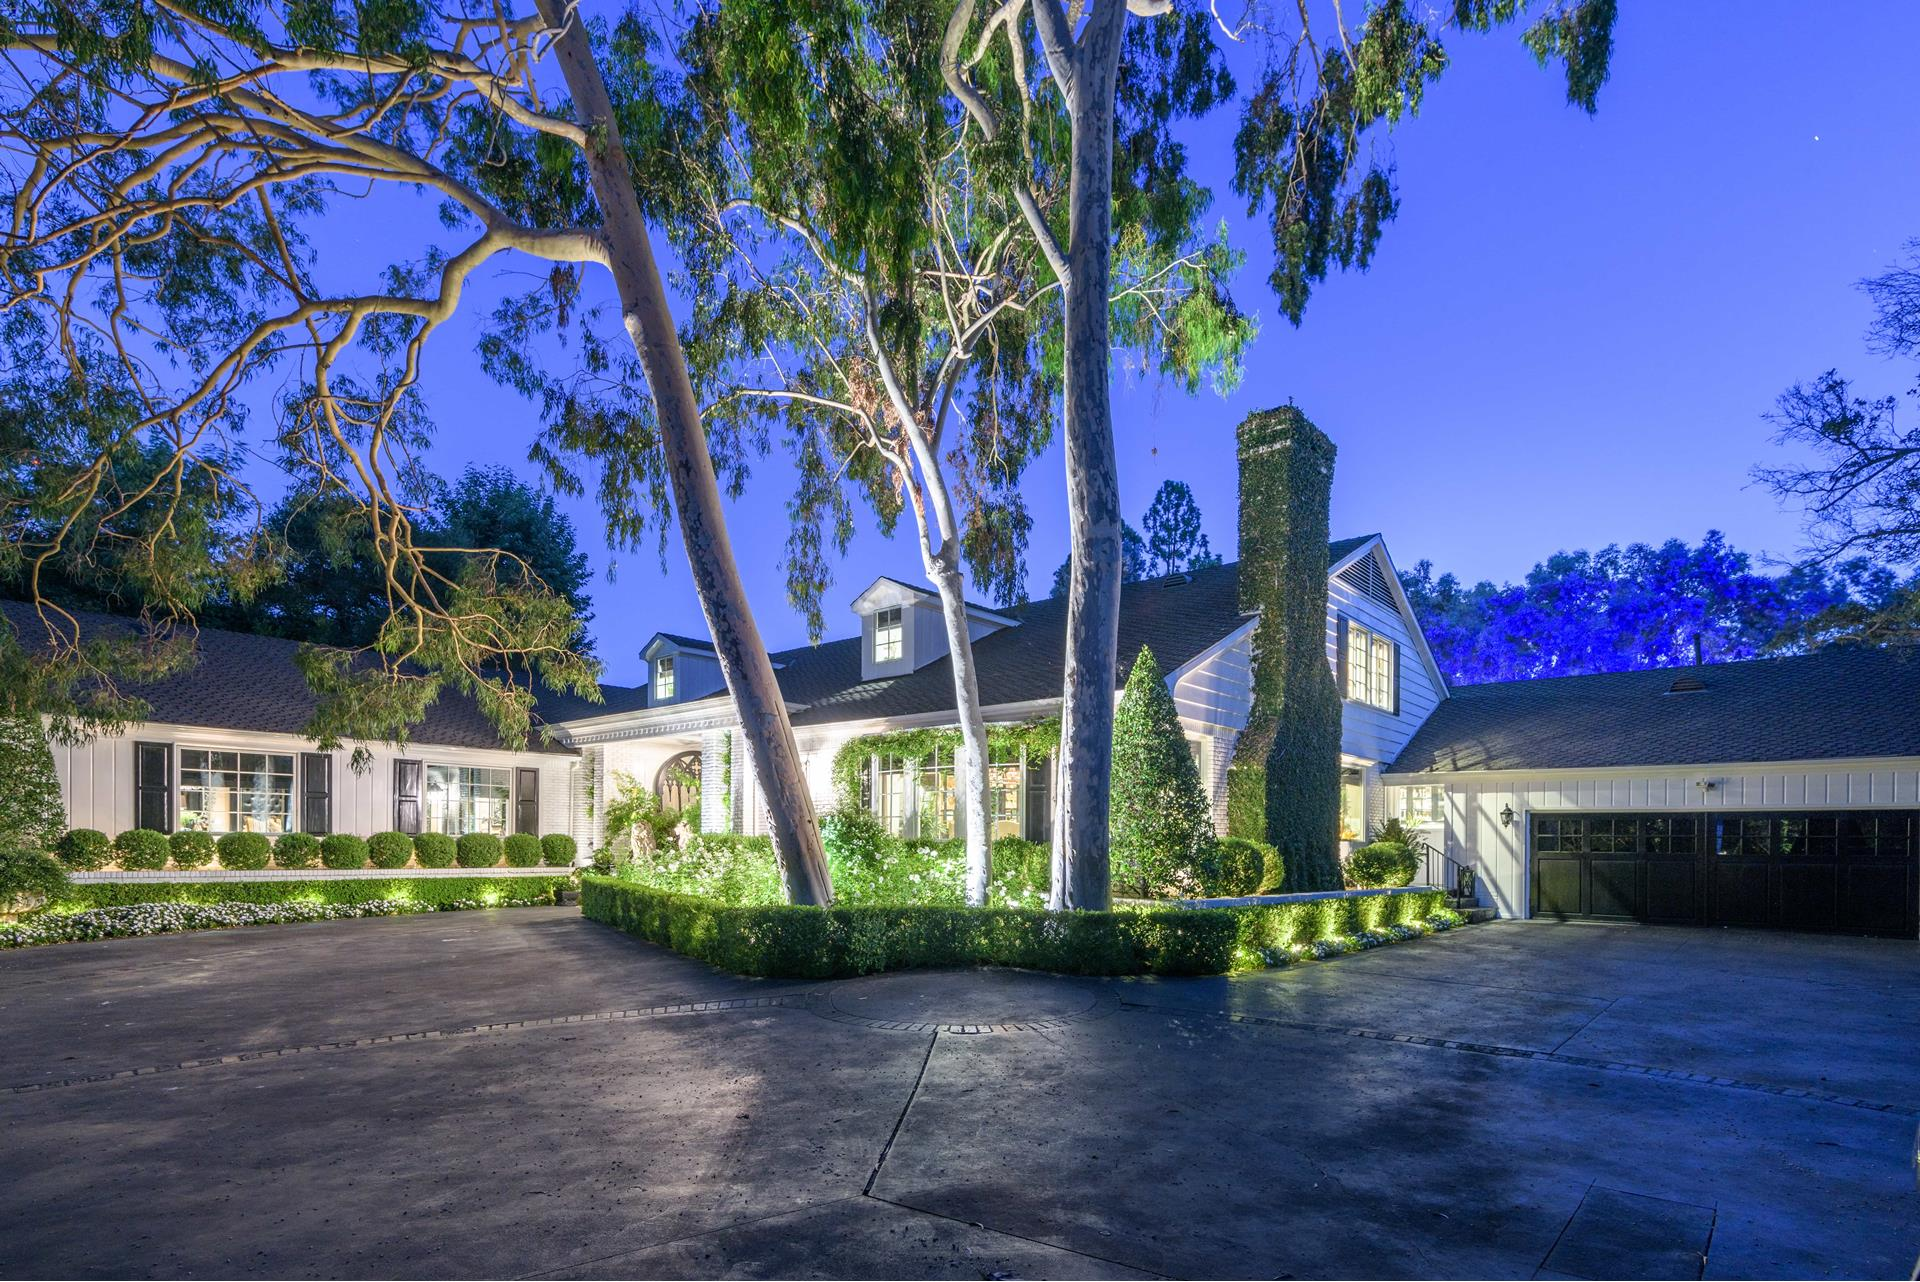 3265 OAKDELL Lane - Studio City, California